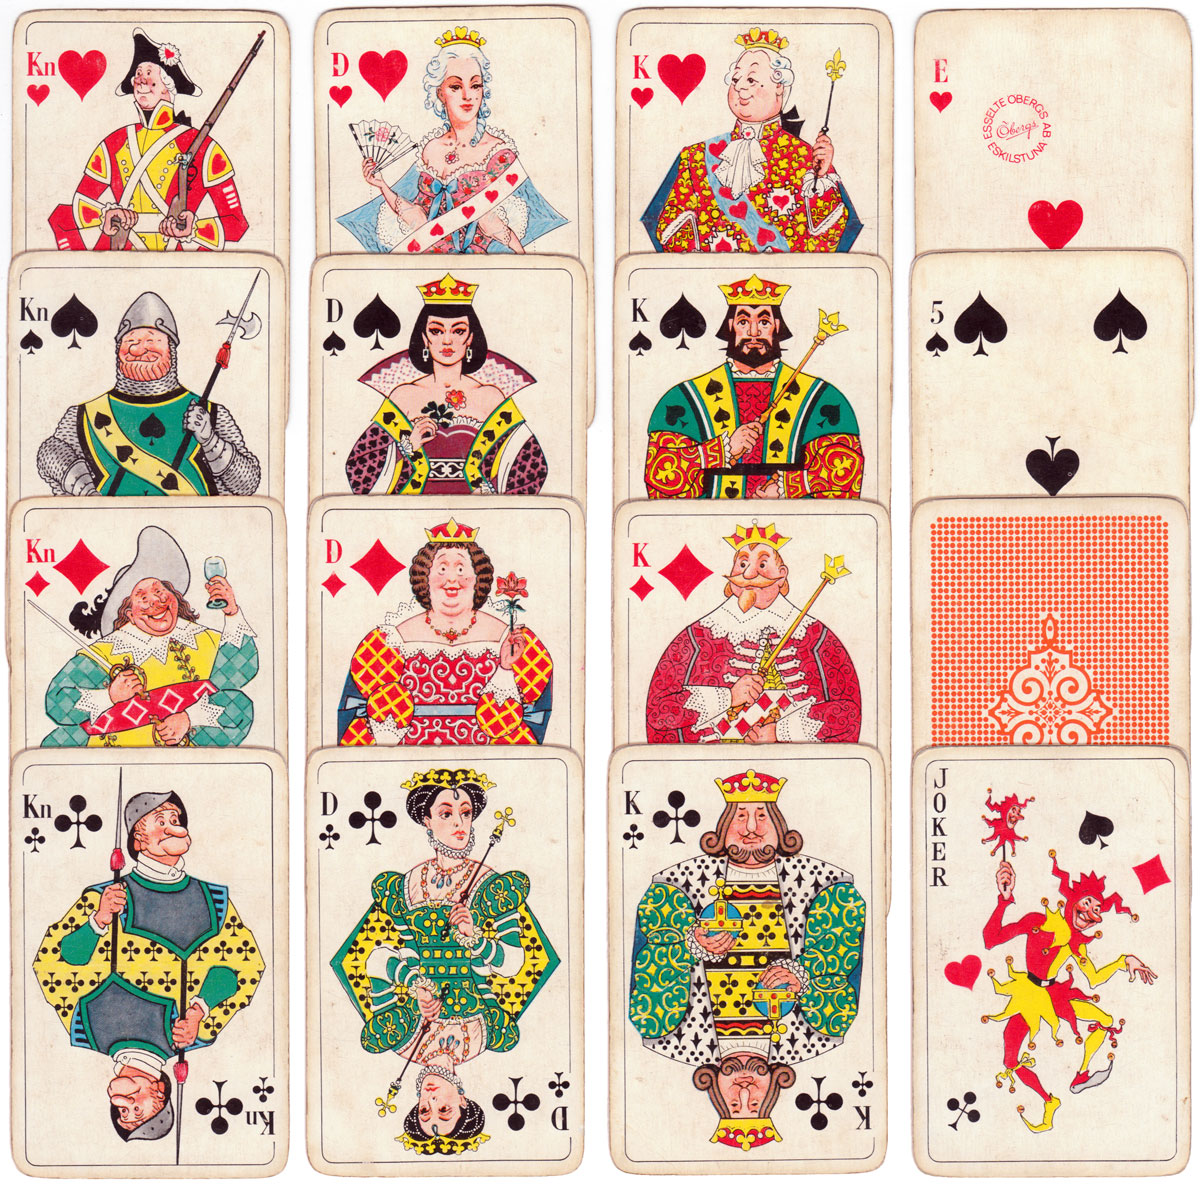 """Four Centuries"" (4 Sekel) playing cards by Esselte Öbergs A.B."